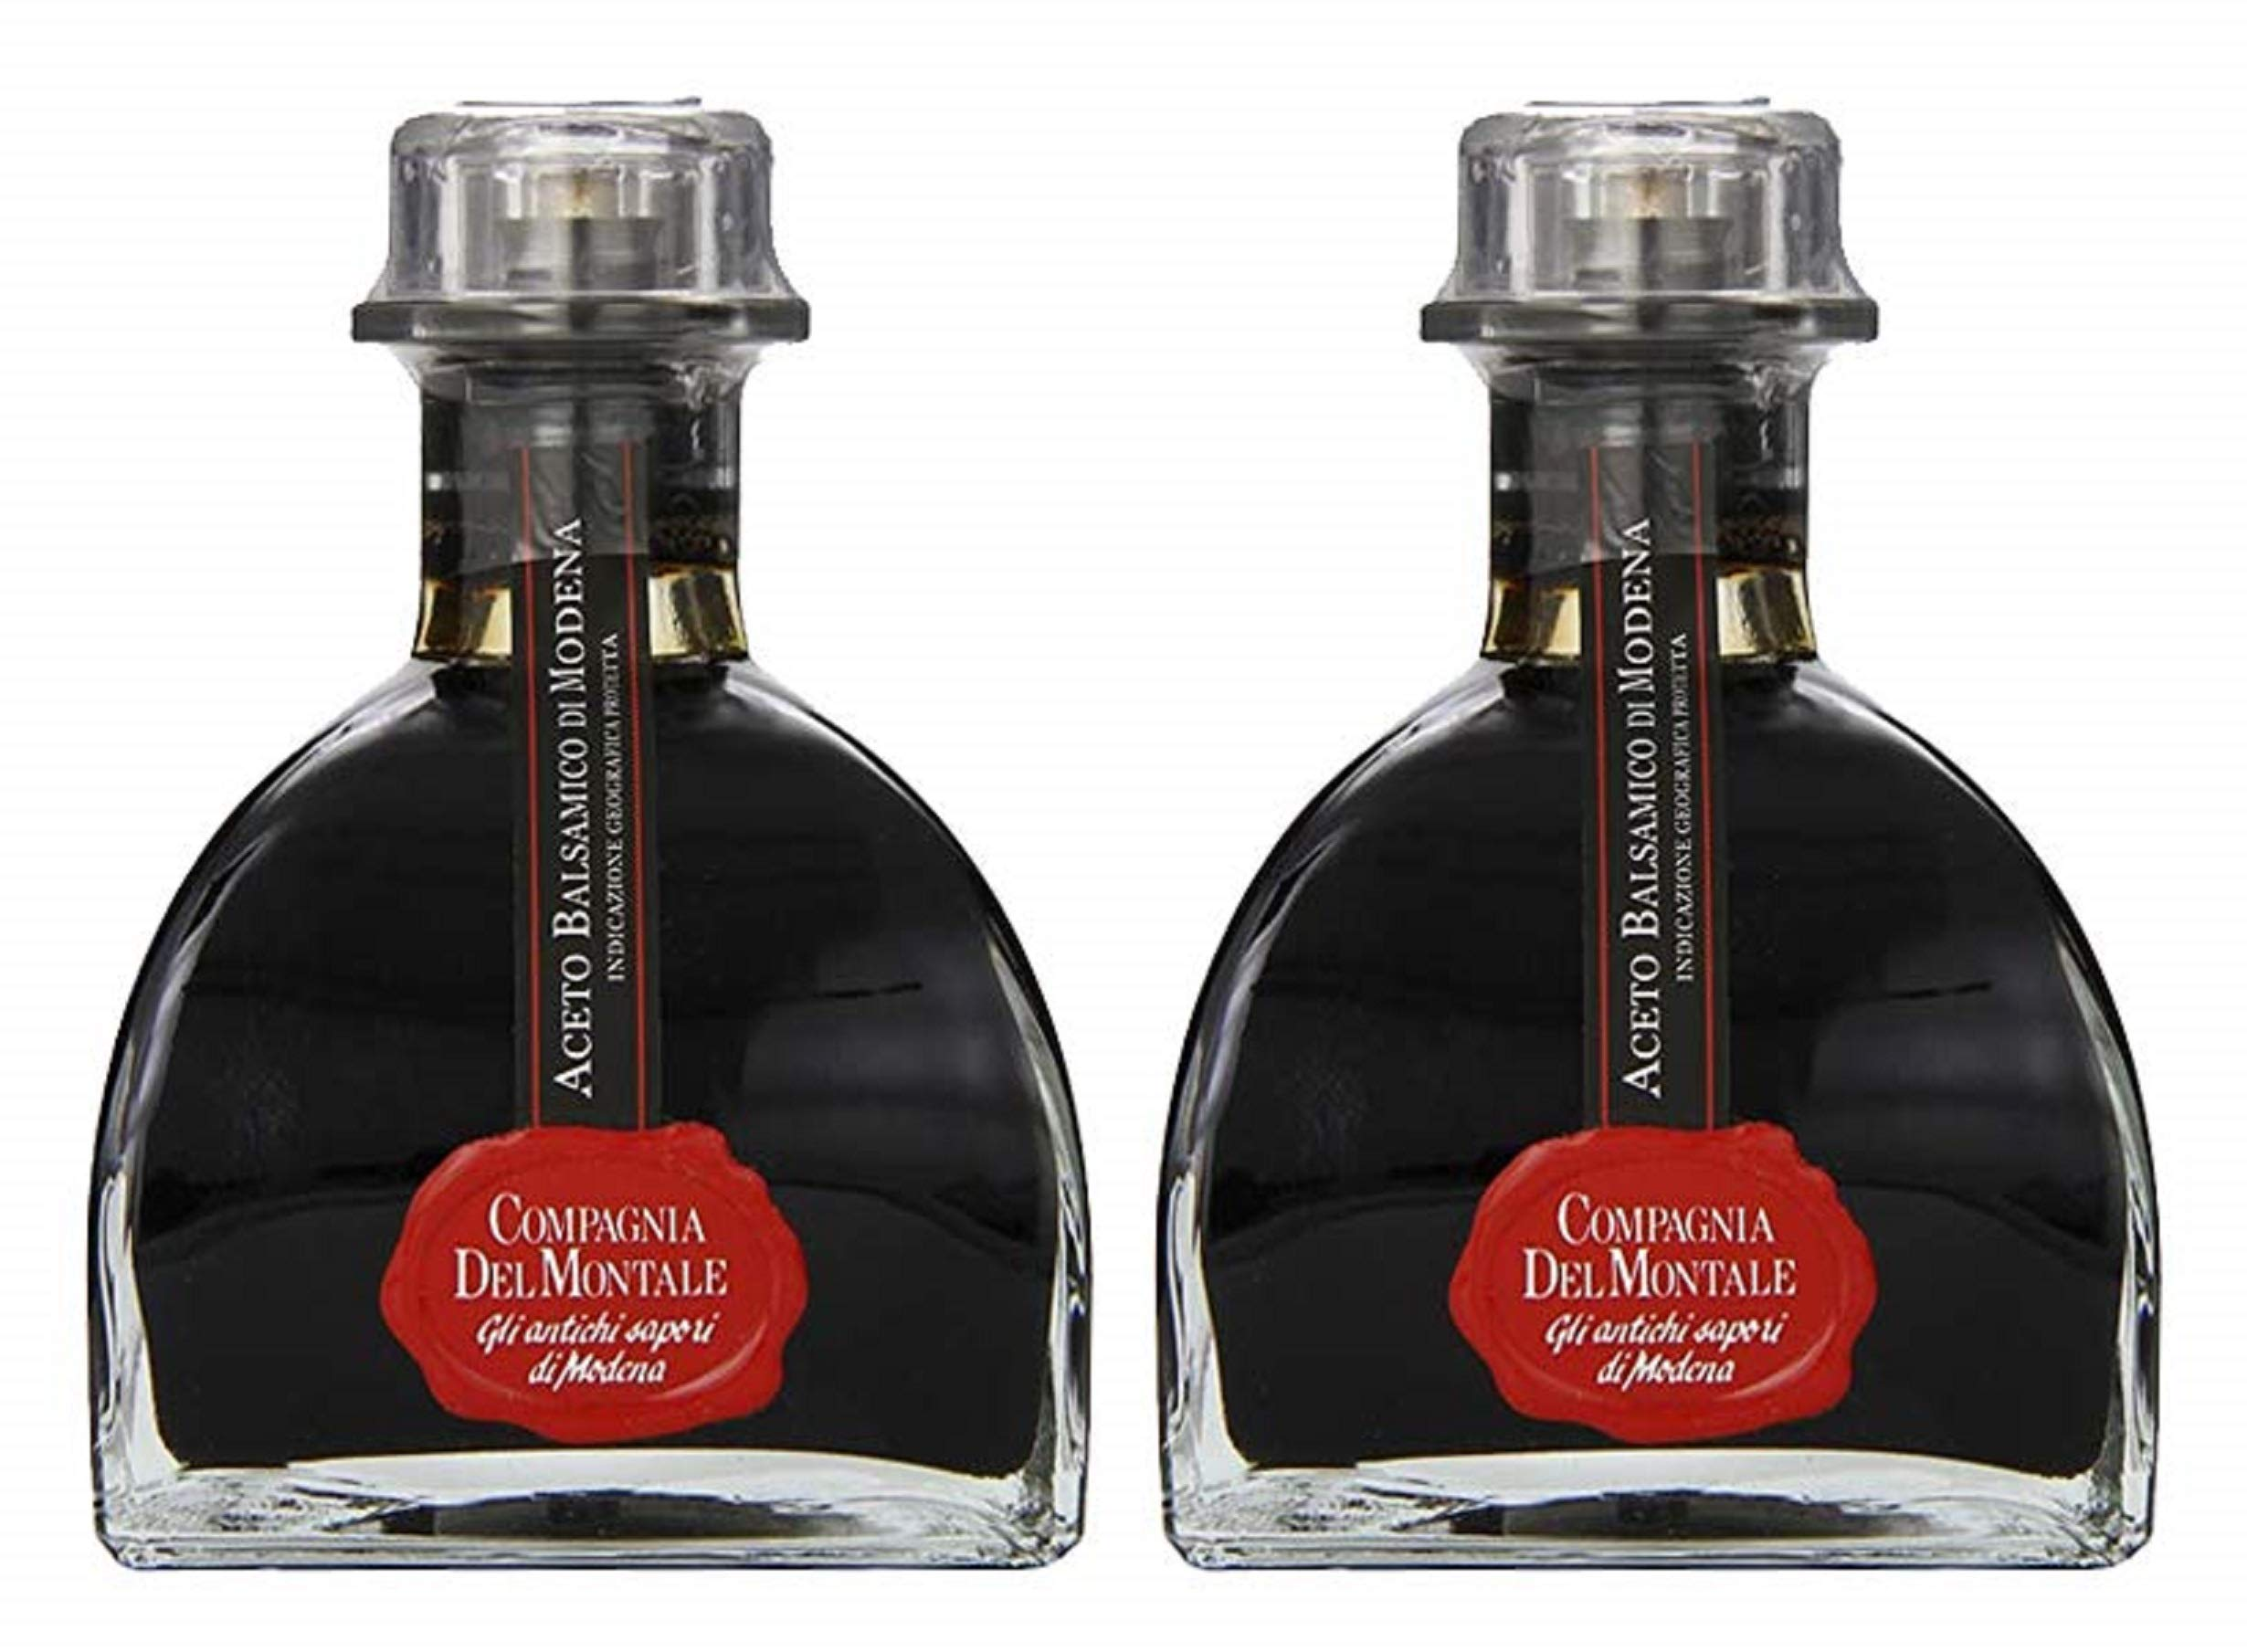 Compagnia Del Montale Special Edition Balsamic Vinegar IGP, Produced in Italy, 8.8 Ounce - 2 Pack by Compagnia del Montale